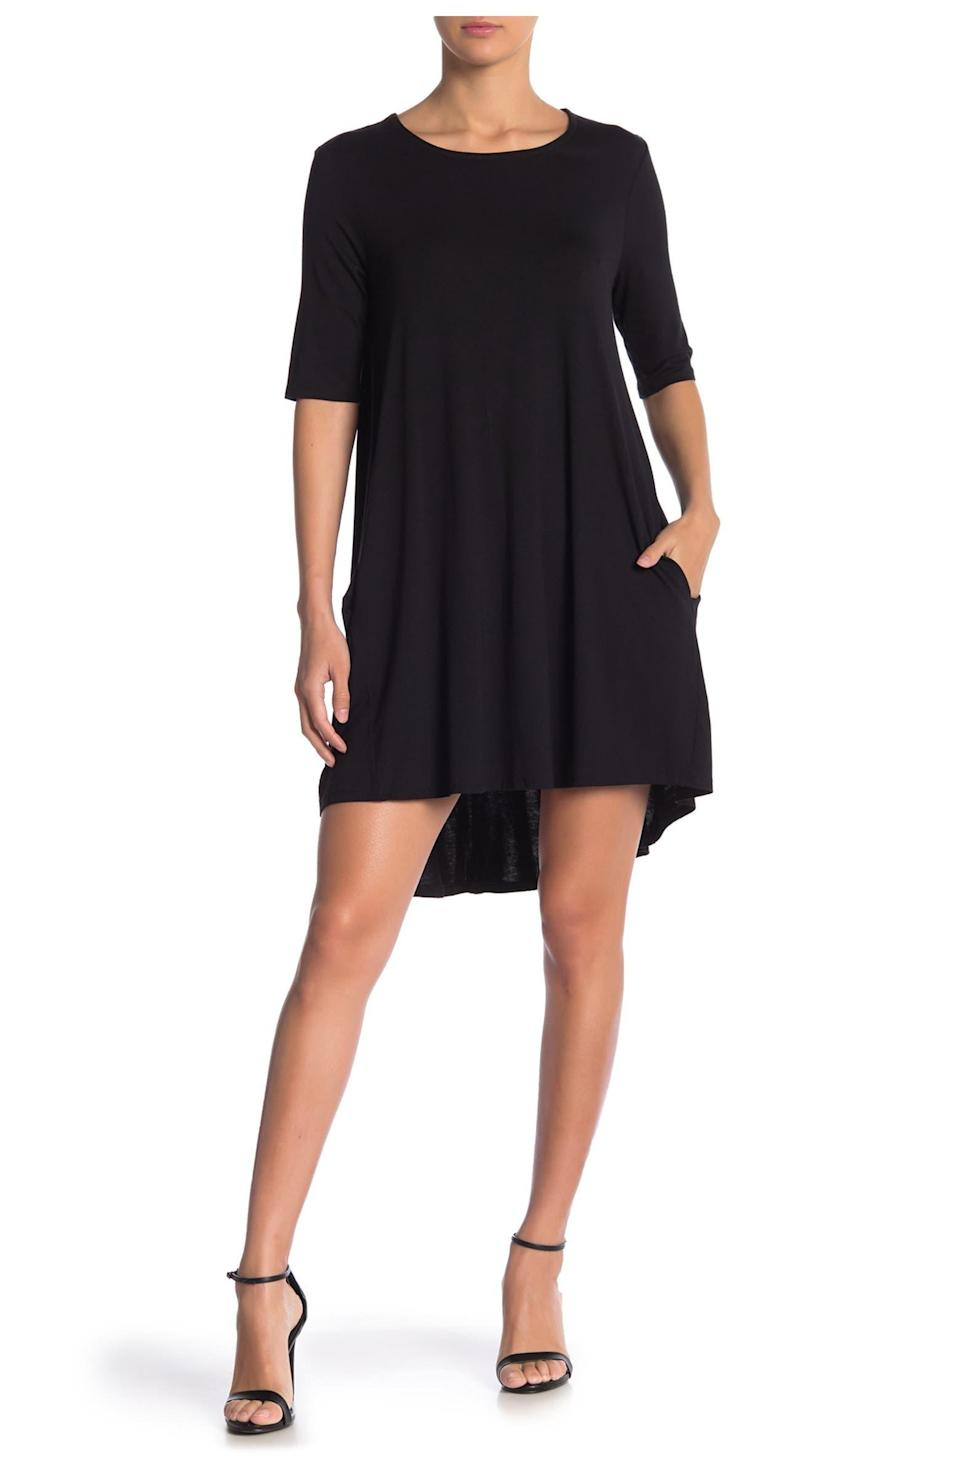 """<h2>Philosophy Cashmere Elbow Sleeve Knit Swing Dress</h2><br>Who can resist a swingy, easy-going mini dress for under $20? File this under """"Perfect LBD.""""<br><br><strong>The Hype: </strong>4.3 out of 5 stars and 376 reviews on <a href=""""https://www.nordstromrack.com/s/philosophy-cashmere-elbow-sleeve-knit-swing-dress/6041463"""" rel=""""nofollow noopener"""" target=""""_blank"""" data-ylk=""""slk:NordstromRack.com"""" class=""""link rapid-noclick-resp"""">NordstromRack.com</a><br><br><strong>What They're Saying:</strong> """"I had been looking for a reasonably priced comfortable and trendy black dress! Bingo! This dress fit that description and is super comfortable. I wore it with tights, a scarf, and boots. I received compliments all day!"""" — Maria B, NordstromRack.com reviewer<br><br><strong>Philosophy Cashmere</strong> Elbow Sleeve Knit Swing Dress, $, available at <a href=""""https://go.skimresources.com/?id=30283X879131&url=https%3A%2F%2Fwww.nordstromrack.com%2Fs%2Fphilosophy-cashmere-elbow-sleeve-knit-swing-dress%2F6041463"""" rel=""""nofollow noopener"""" target=""""_blank"""" data-ylk=""""slk:Nordstrom Rack"""" class=""""link rapid-noclick-resp"""">Nordstrom Rack</a>"""